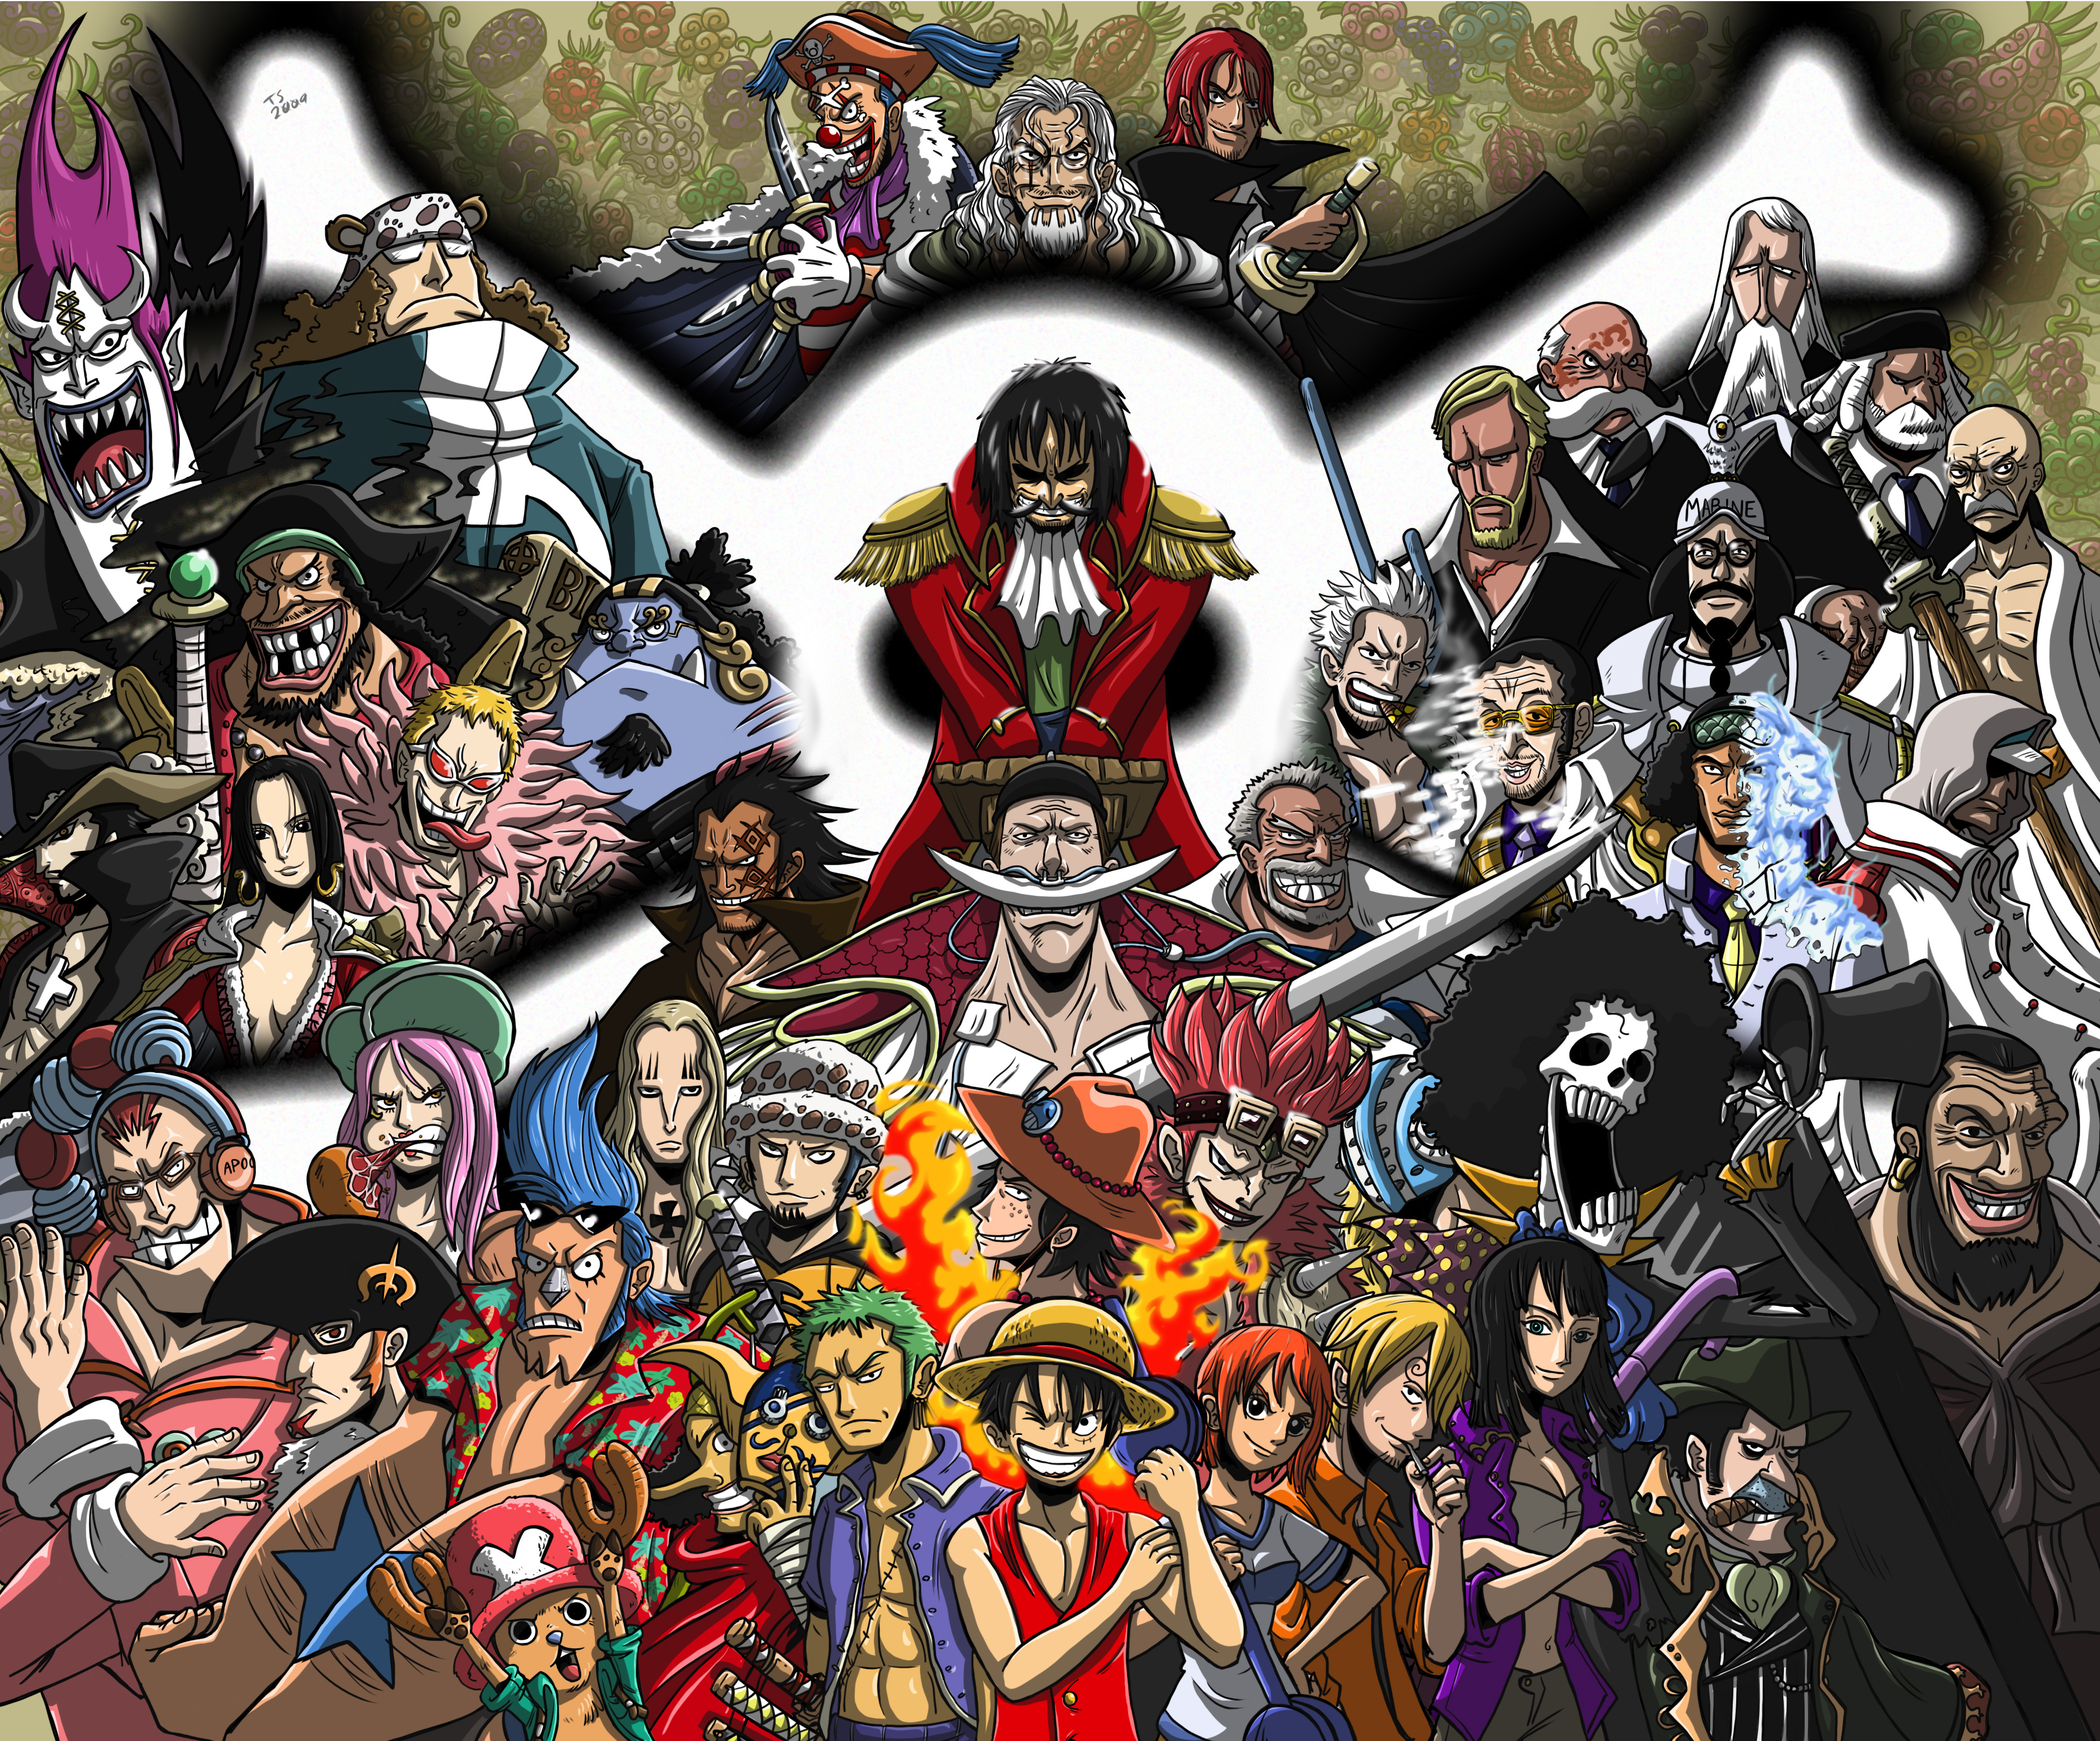 435 One Piece Wallpapers | One Piece Backgrounds